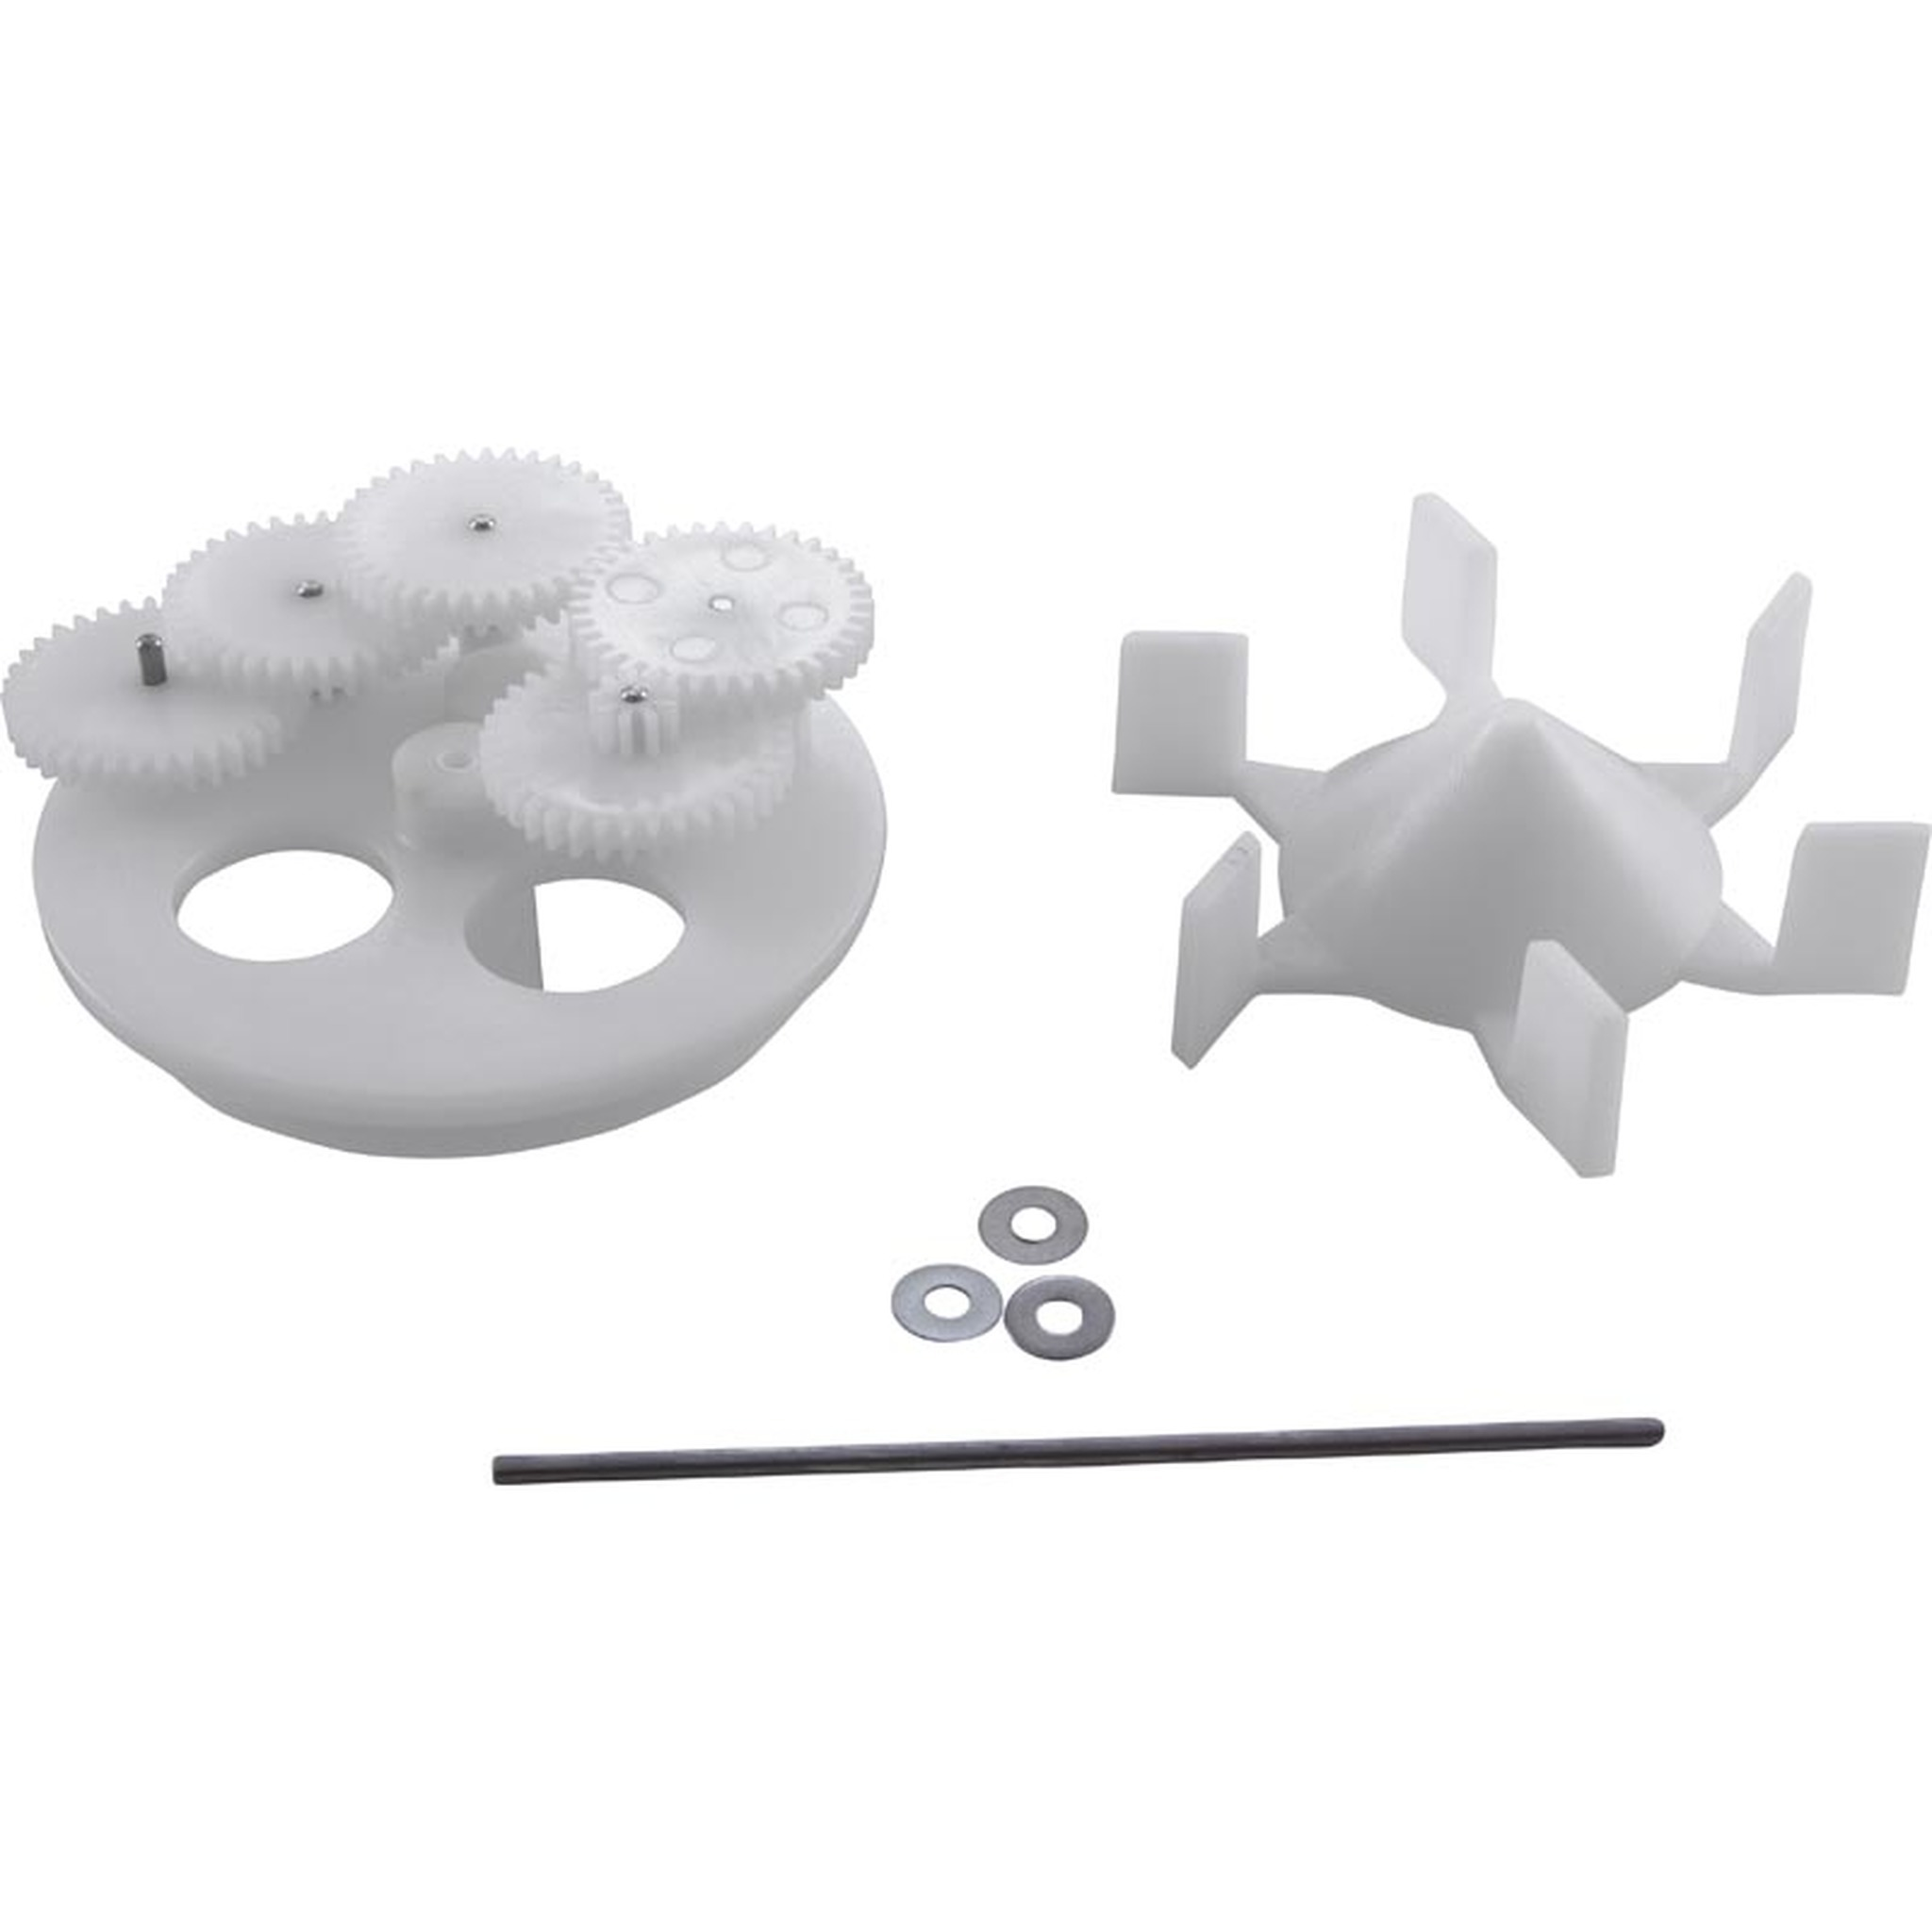 A&A Manufacturing Gear Kits